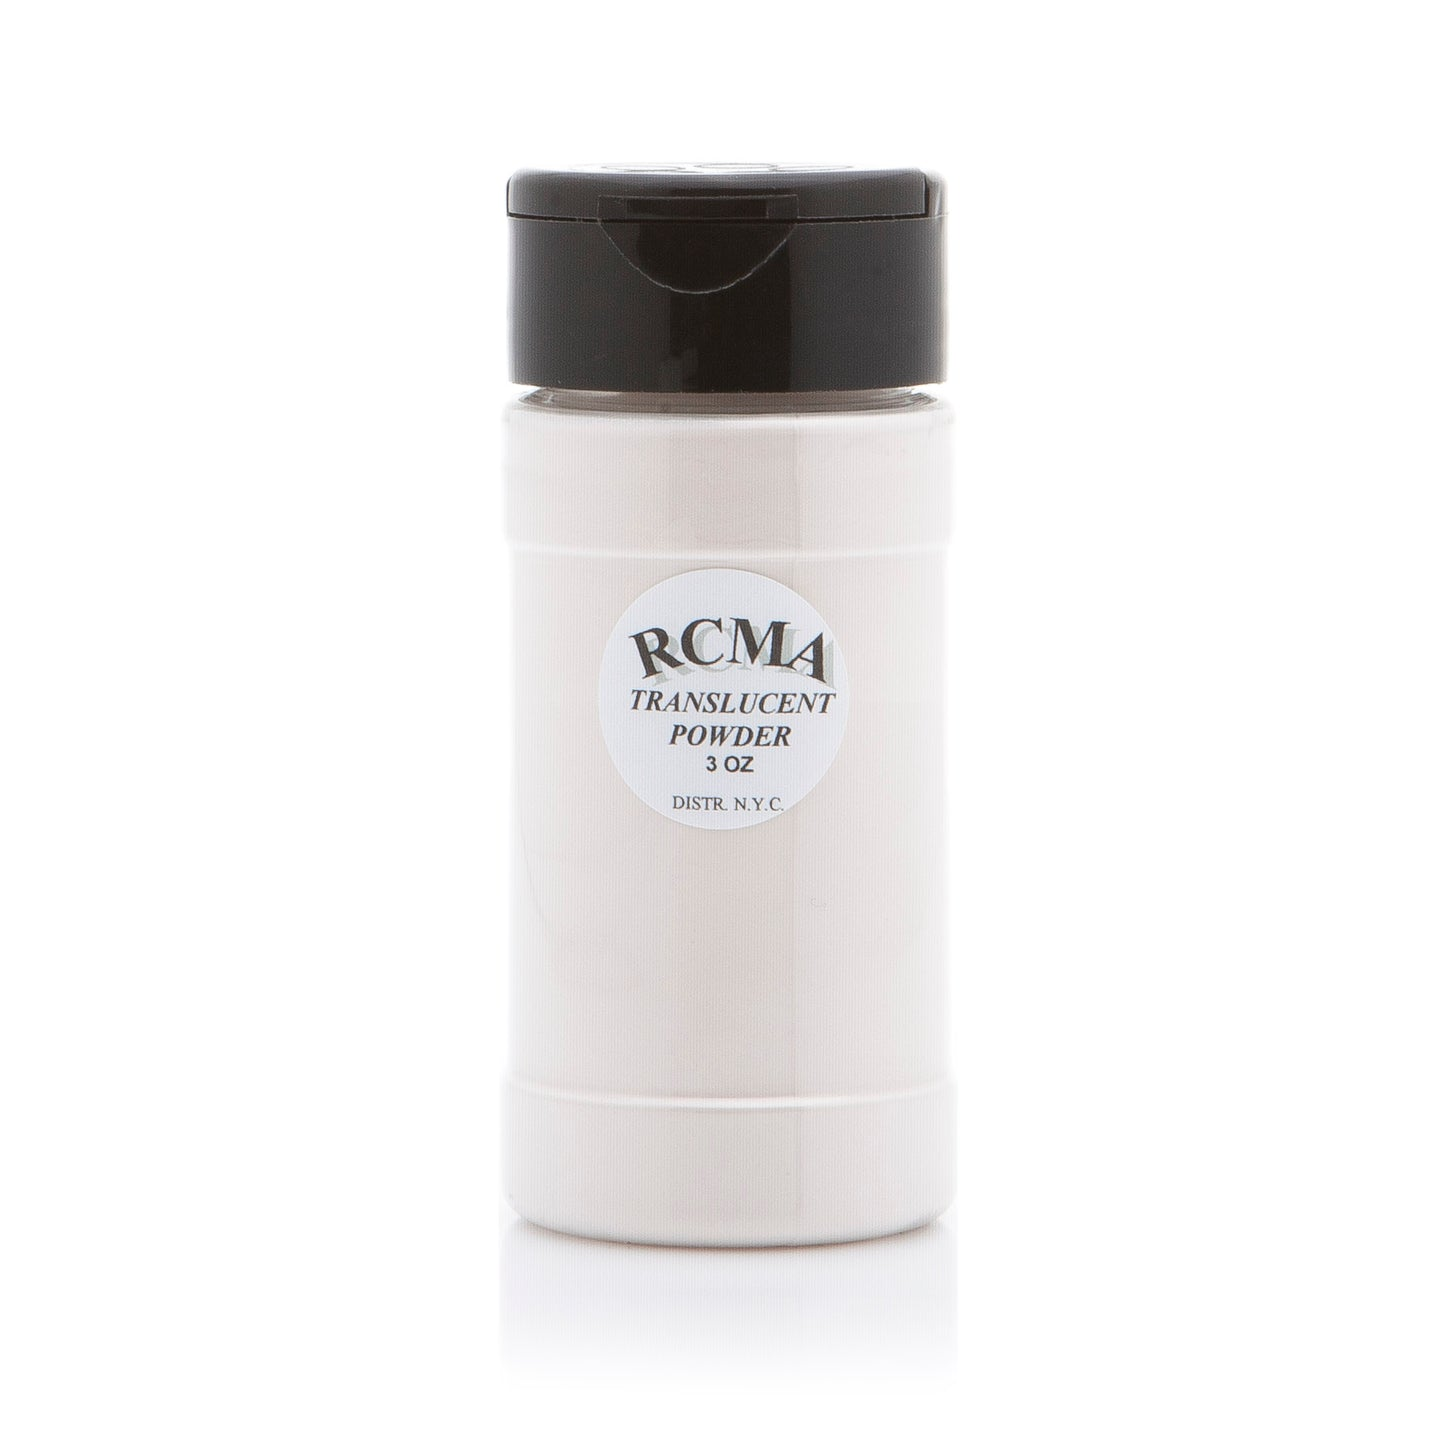 RCMA Loose Powder